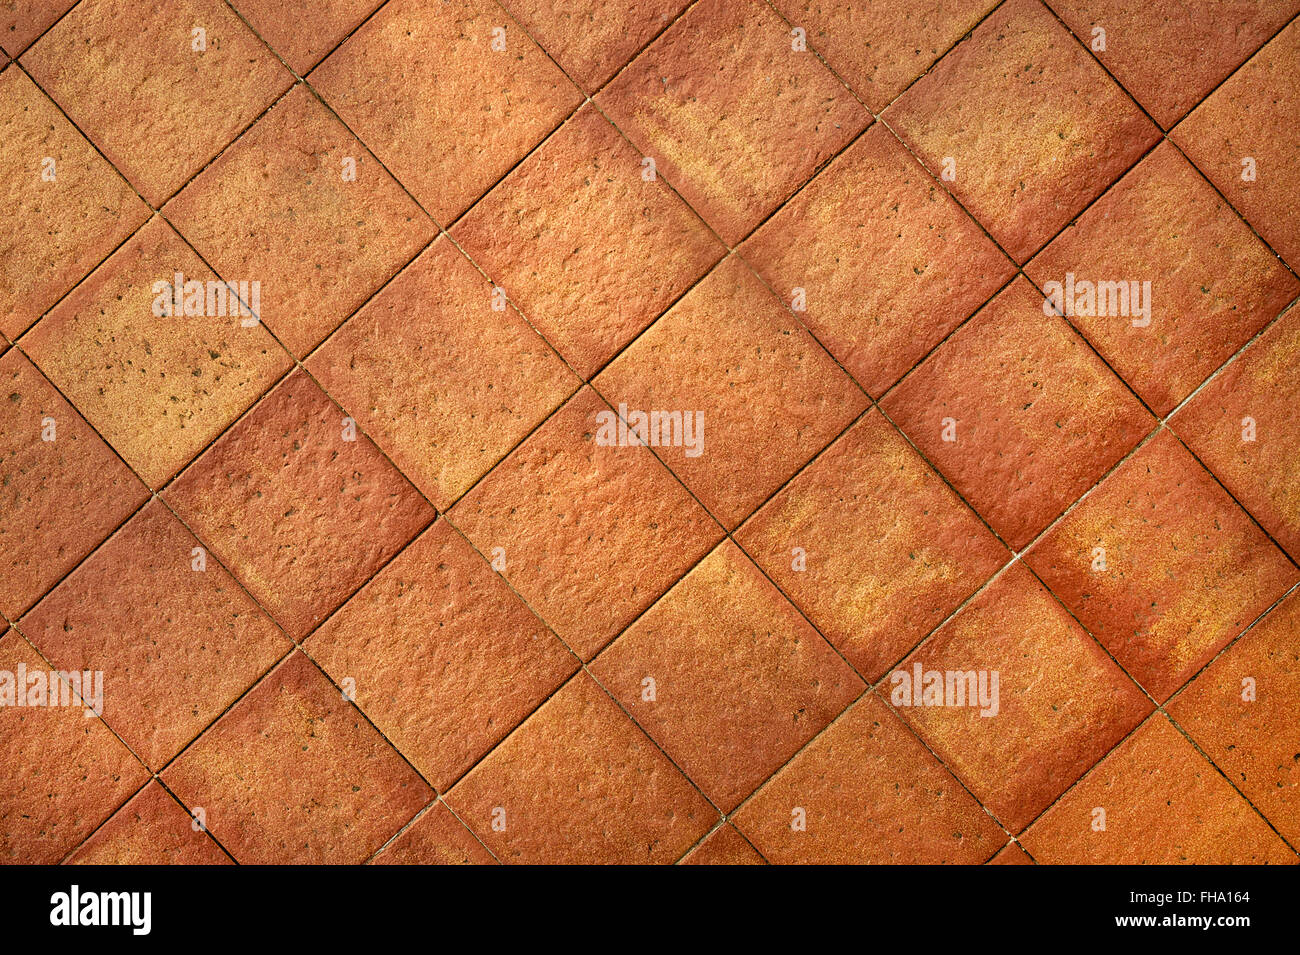 terracotta tiled floor stock photos & terracotta tiled floor stock